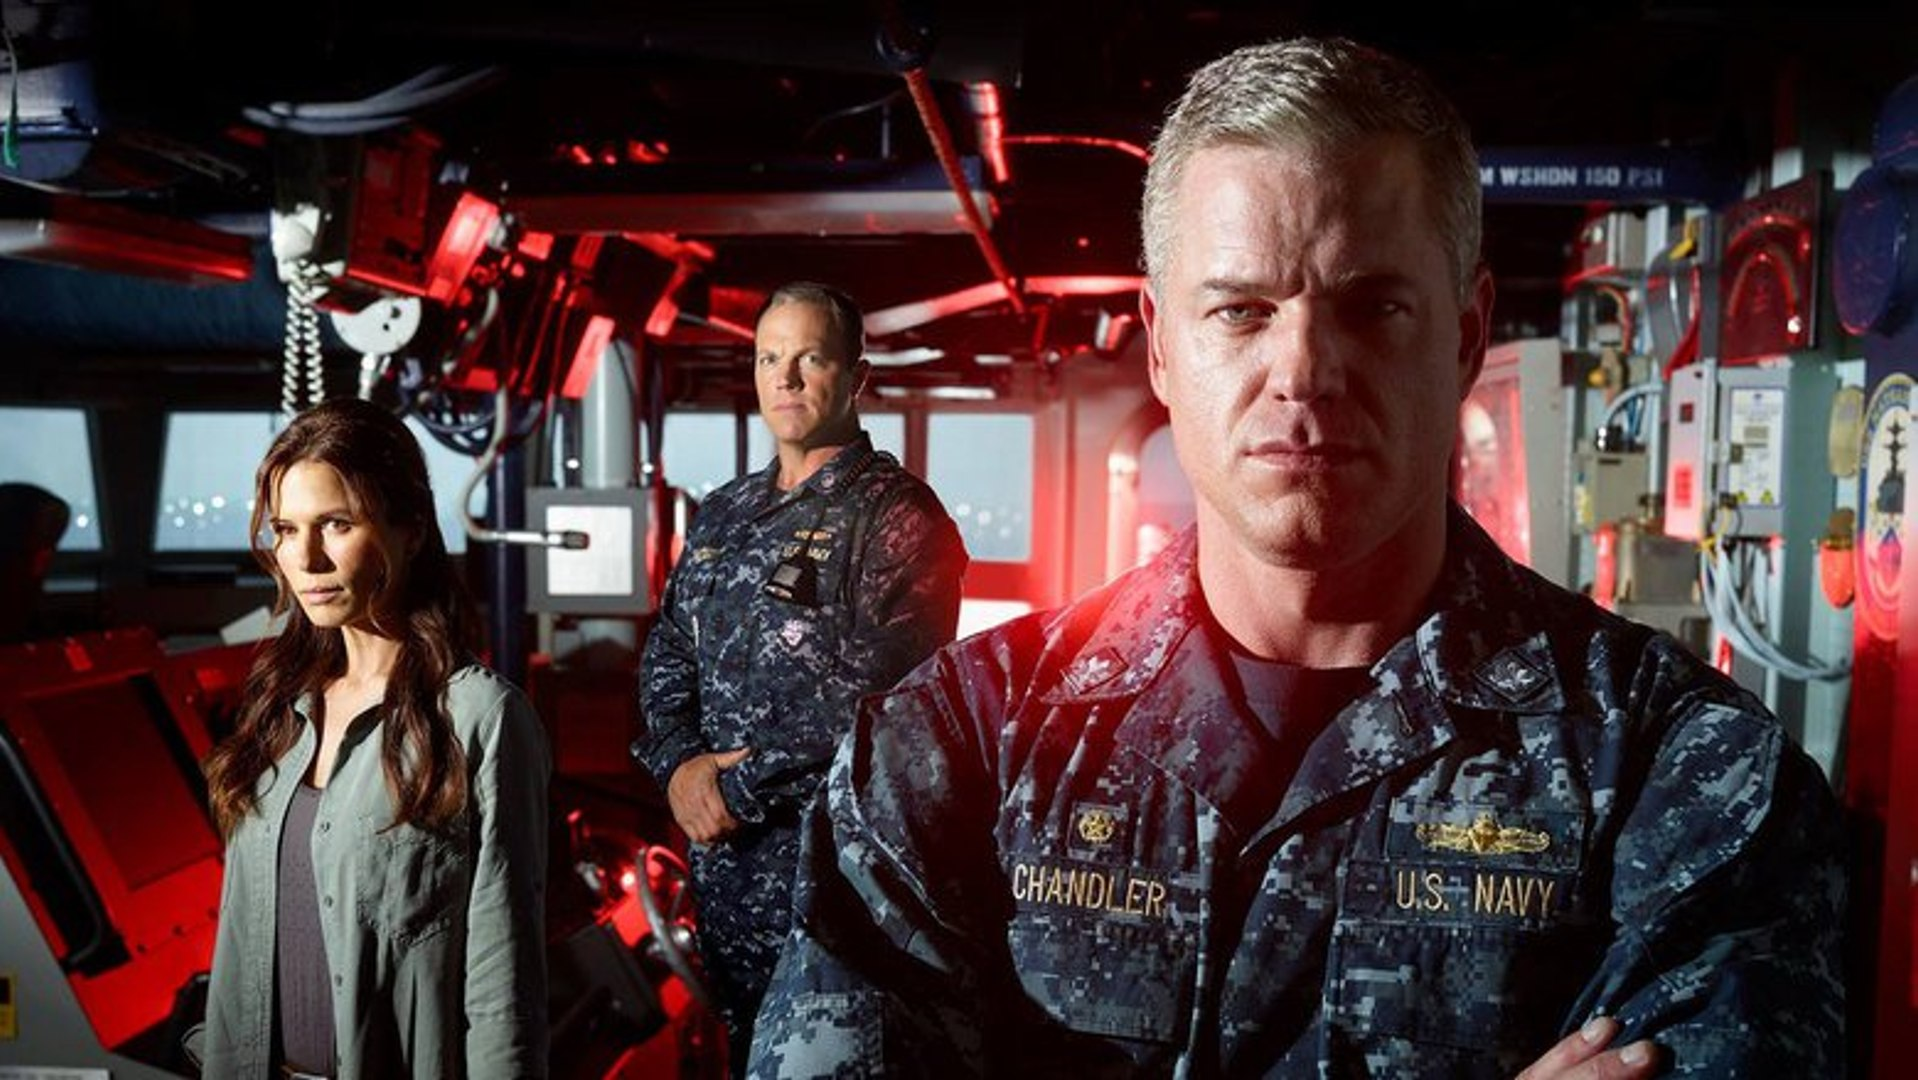 Watch The Last Ship S3E1 Full Episode Online for Free